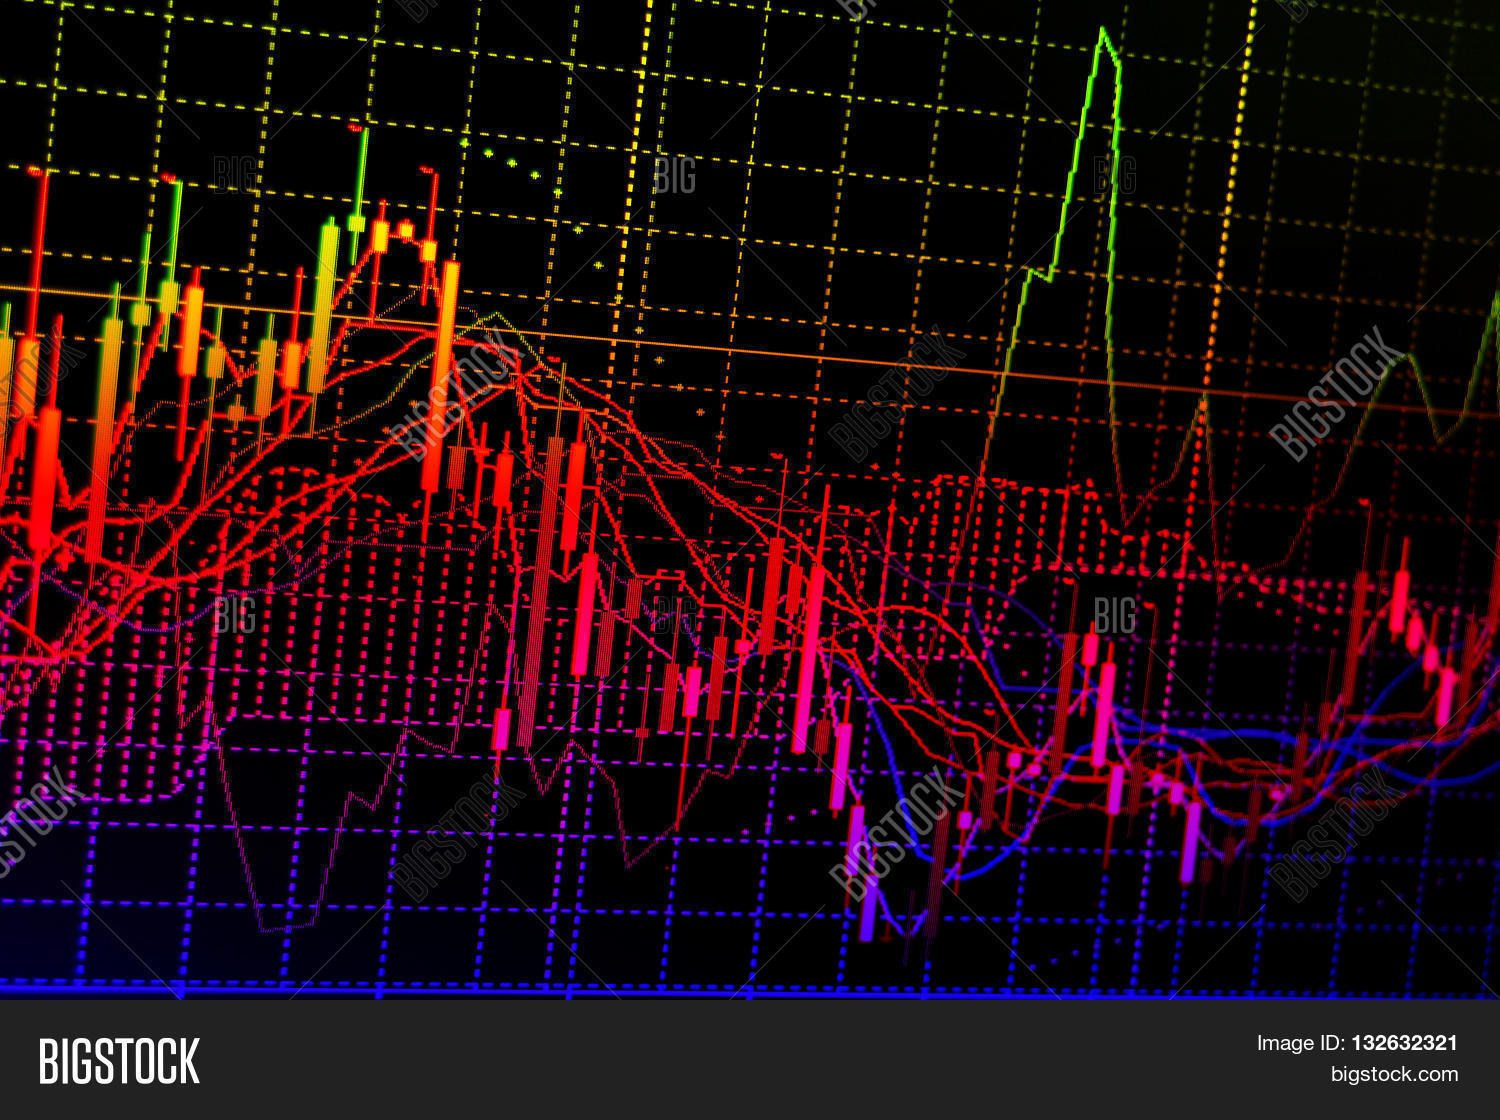 charts quotes on image photo free trial bigstock